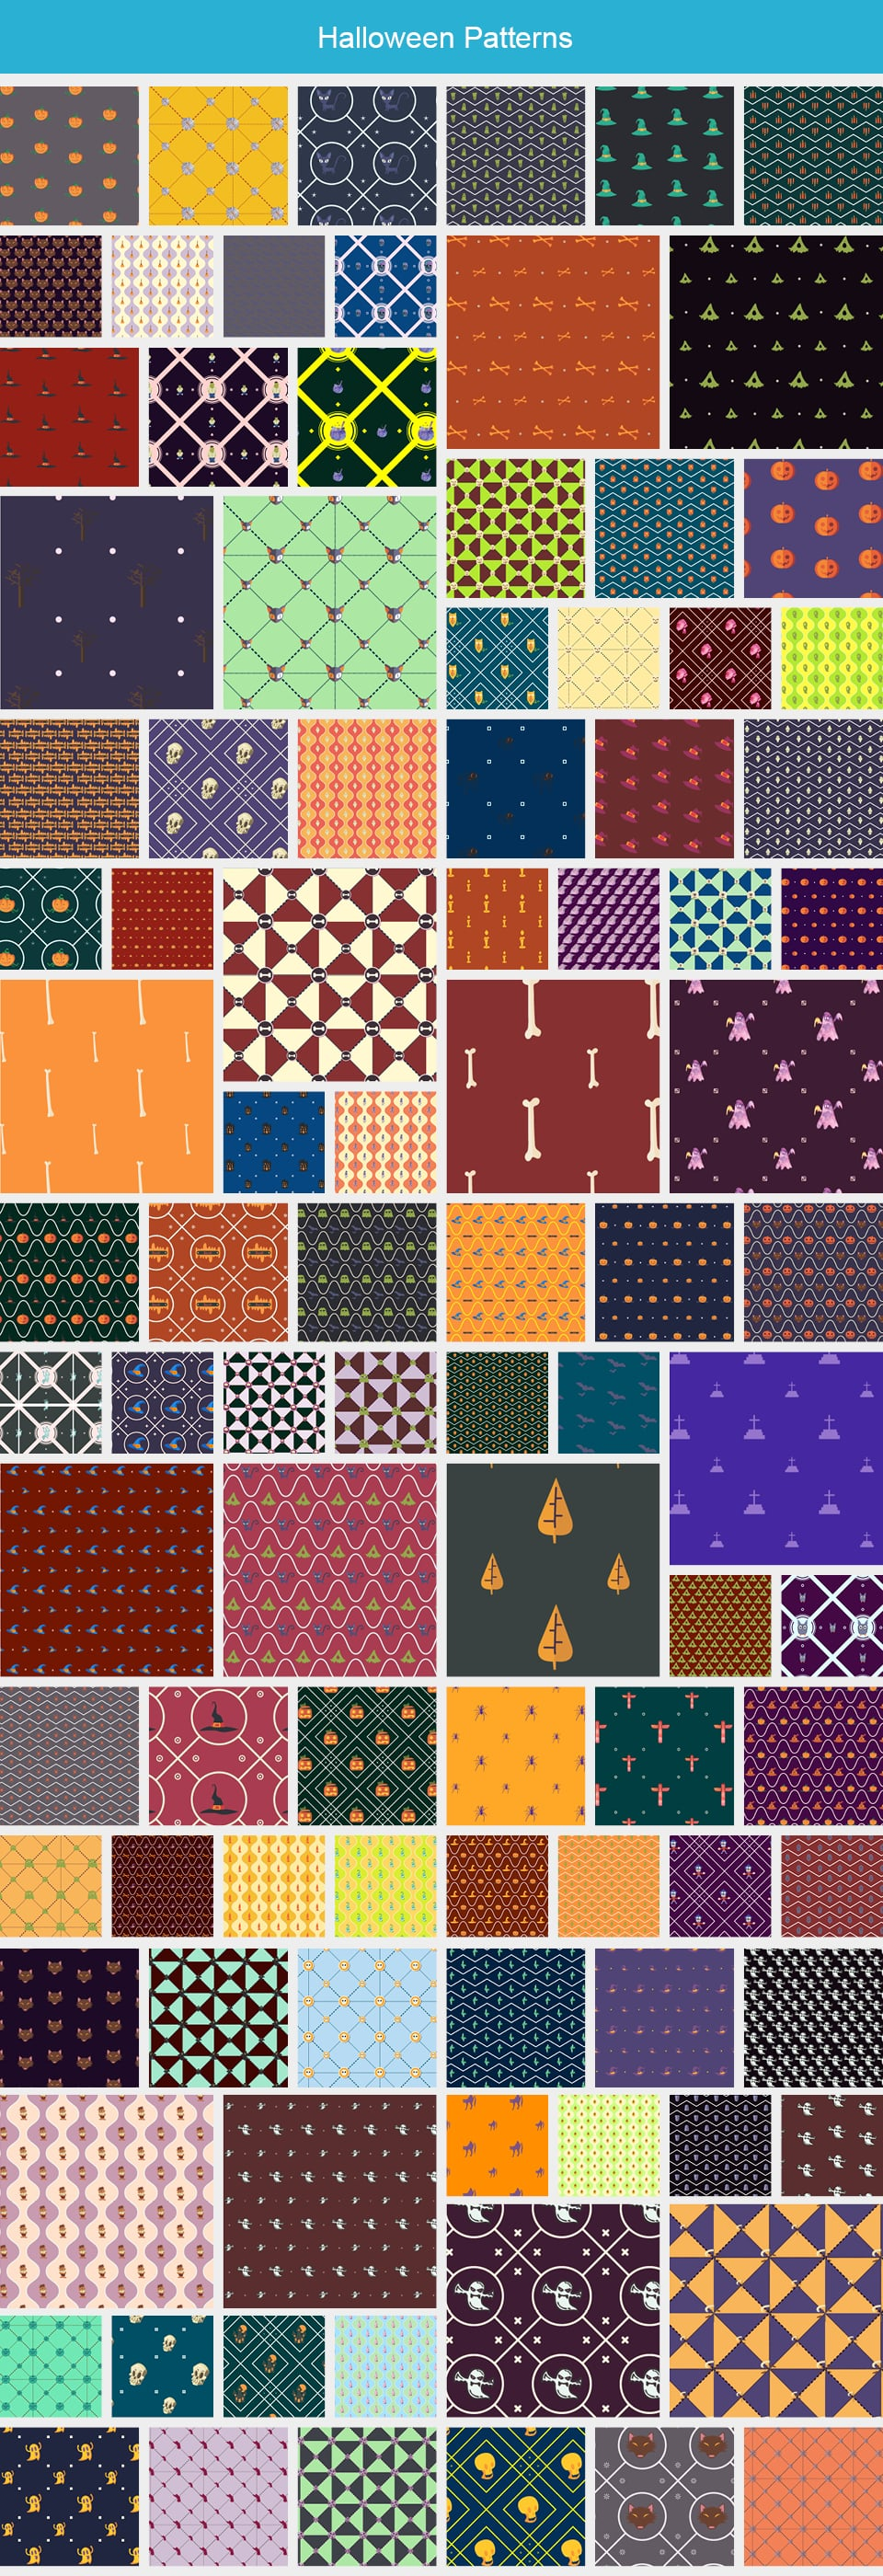 Modern Pattern Designs - Mega Bundle with 2000 Patterns - Large Preview Halloween